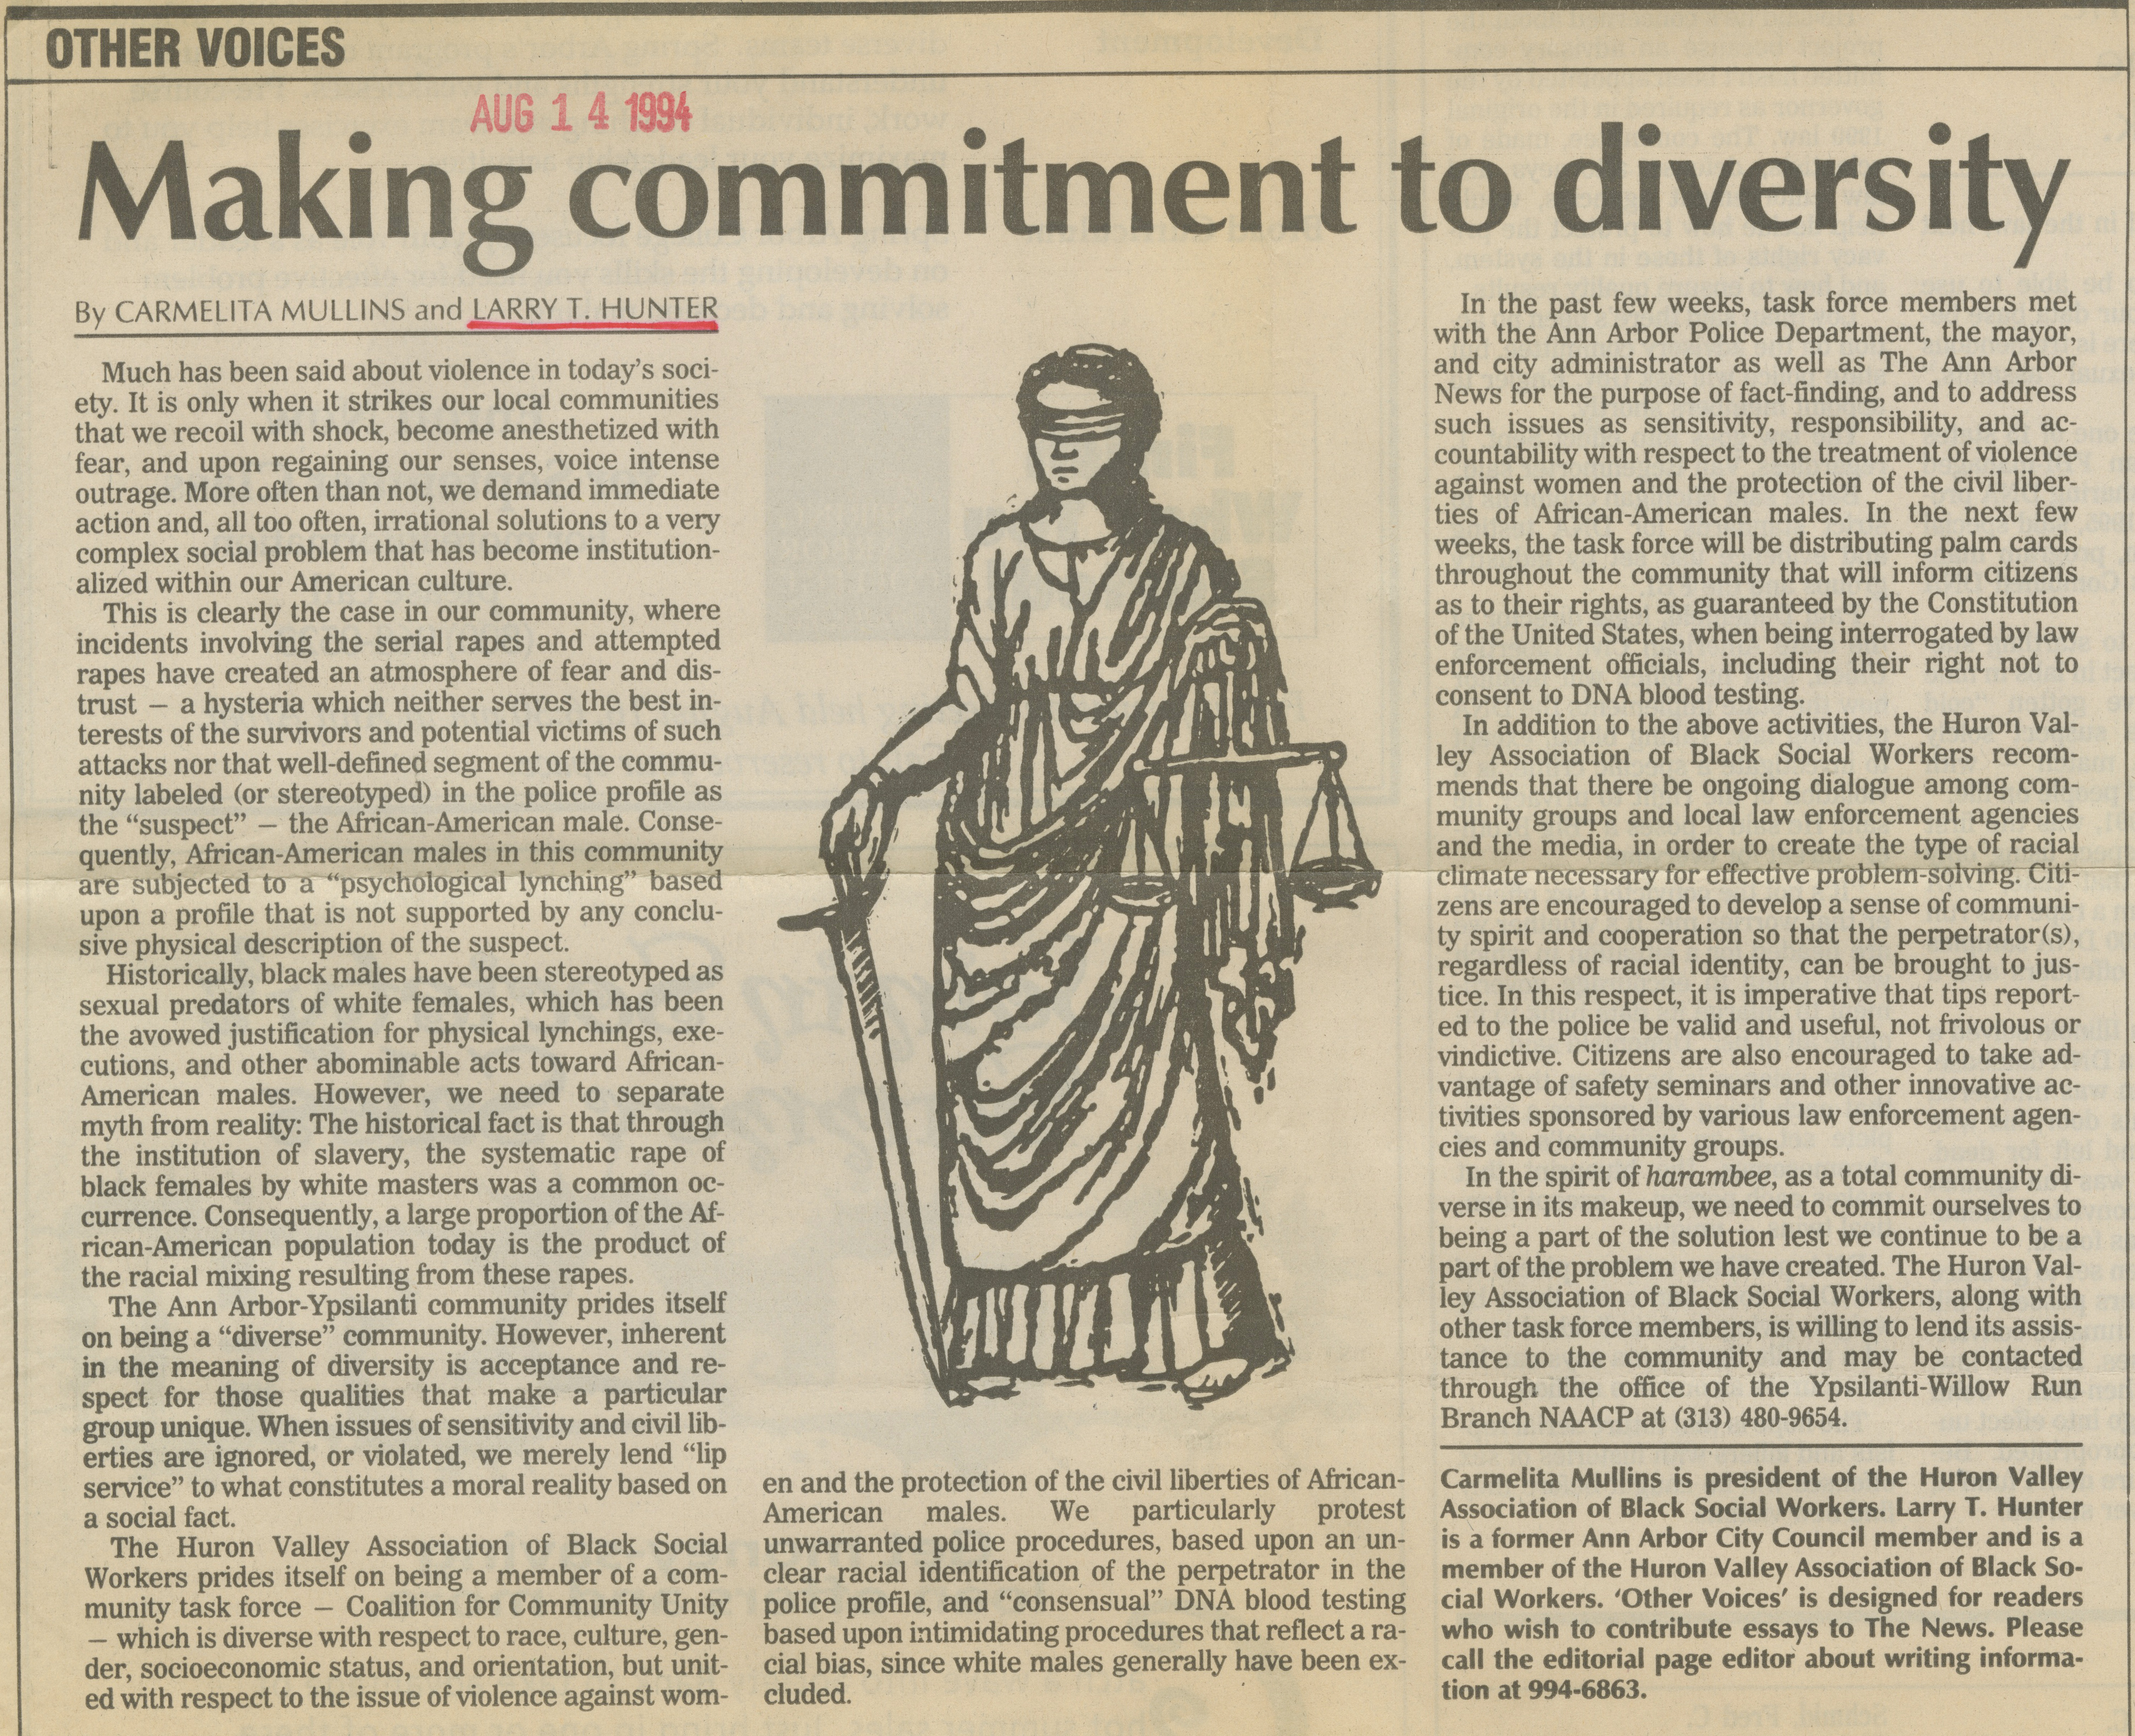 Making commitment to diversity image